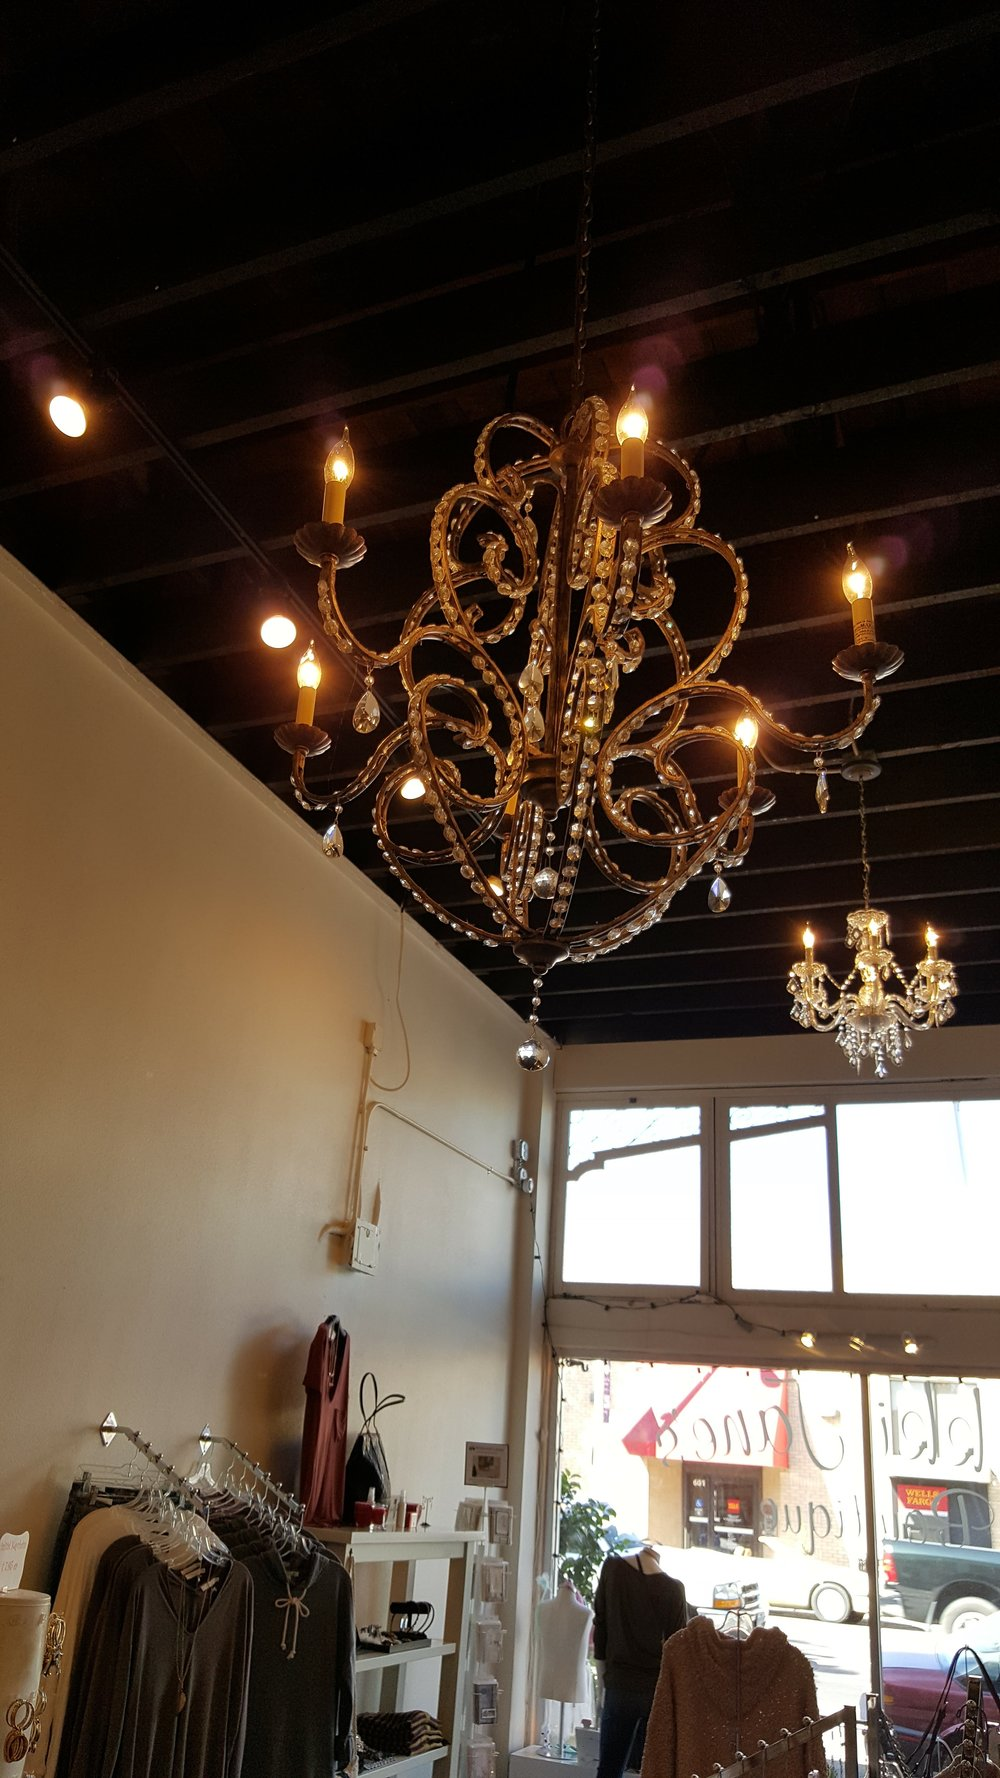 I fell in love with this Antique chandelier in Amy's store.  You can't miss it!  It's Gorgeous